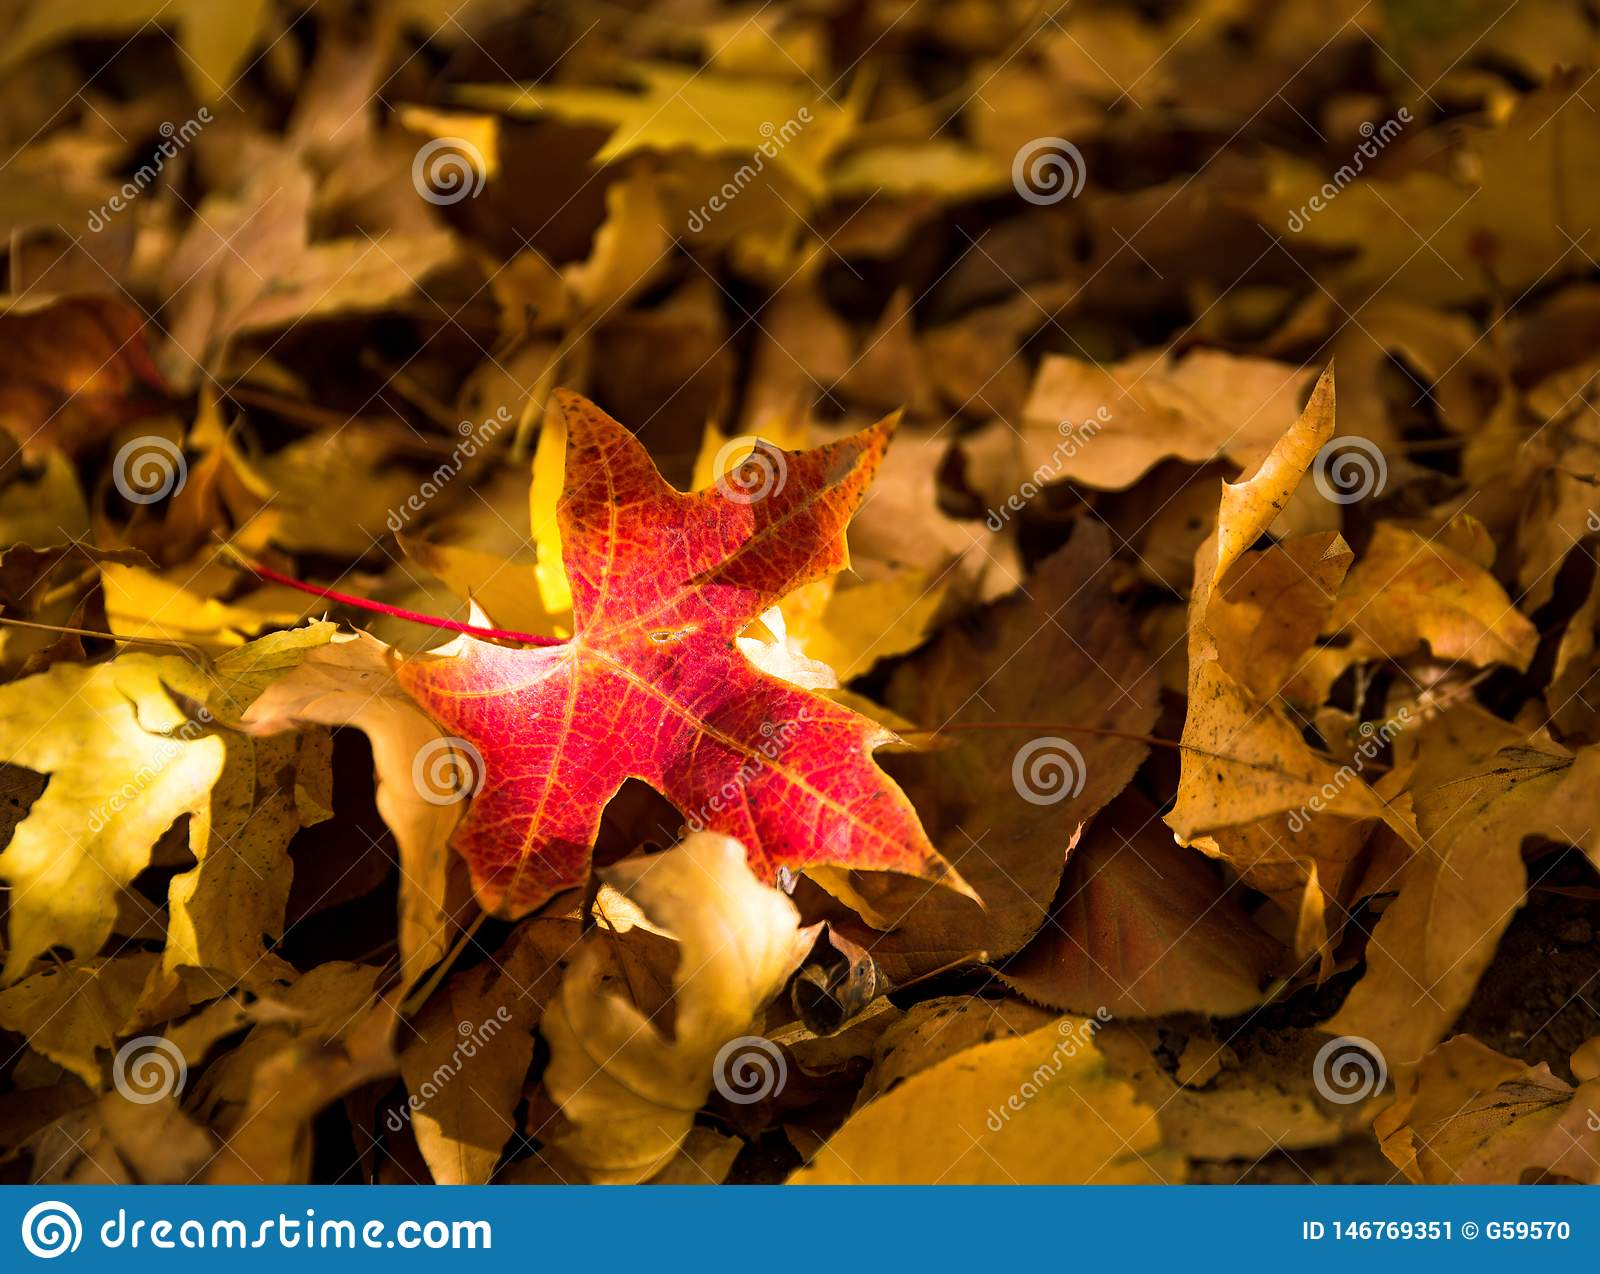 Red maple leaf, close-up, withered leaves, autumn scenery